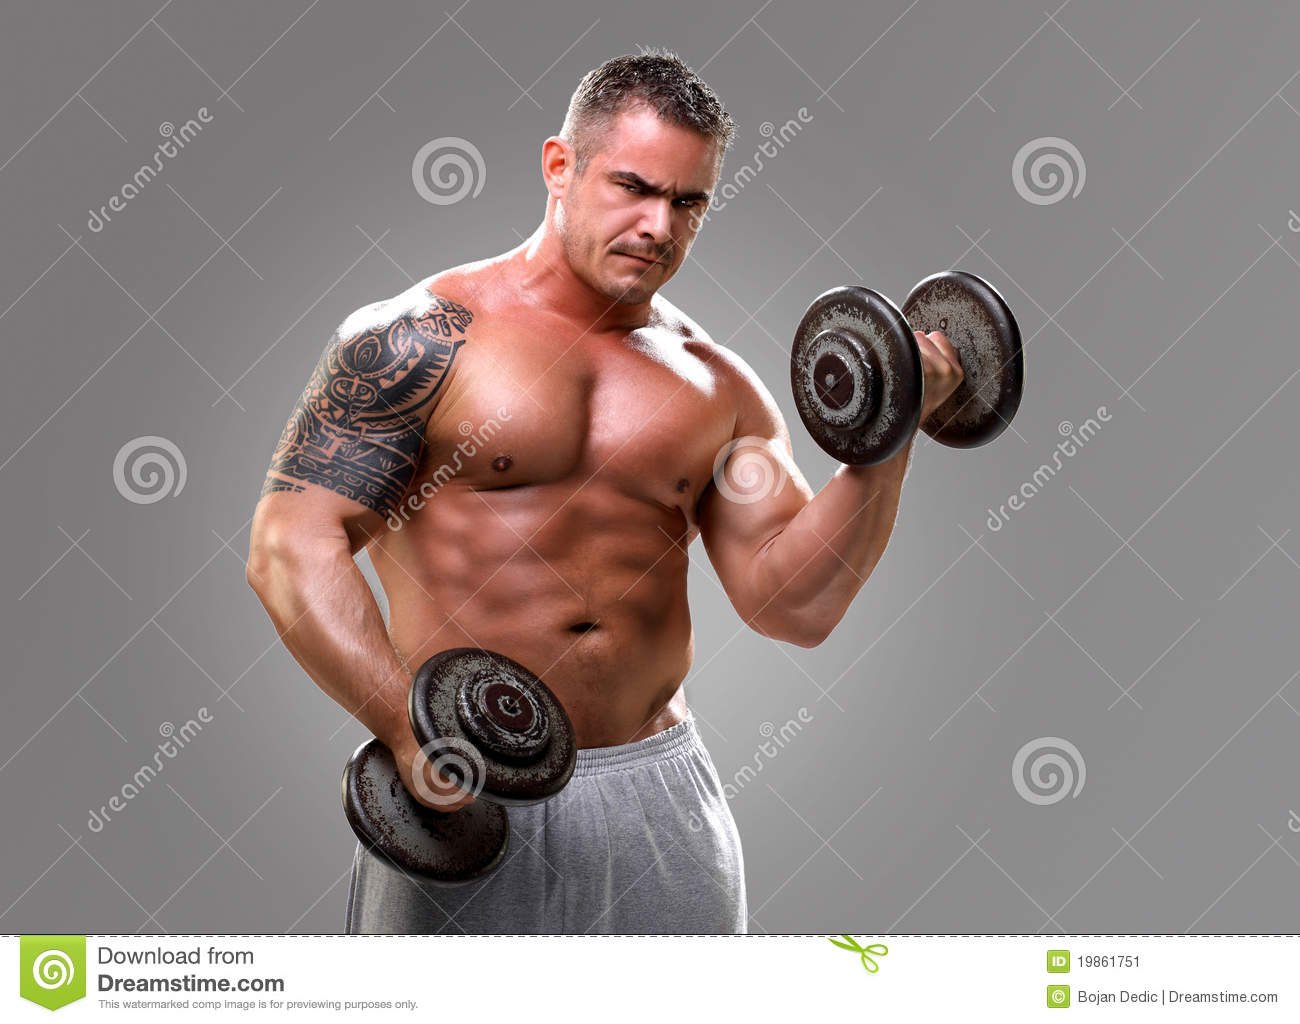 Bodybuilder Lifting Weights High-Res Stock Photo - Getty